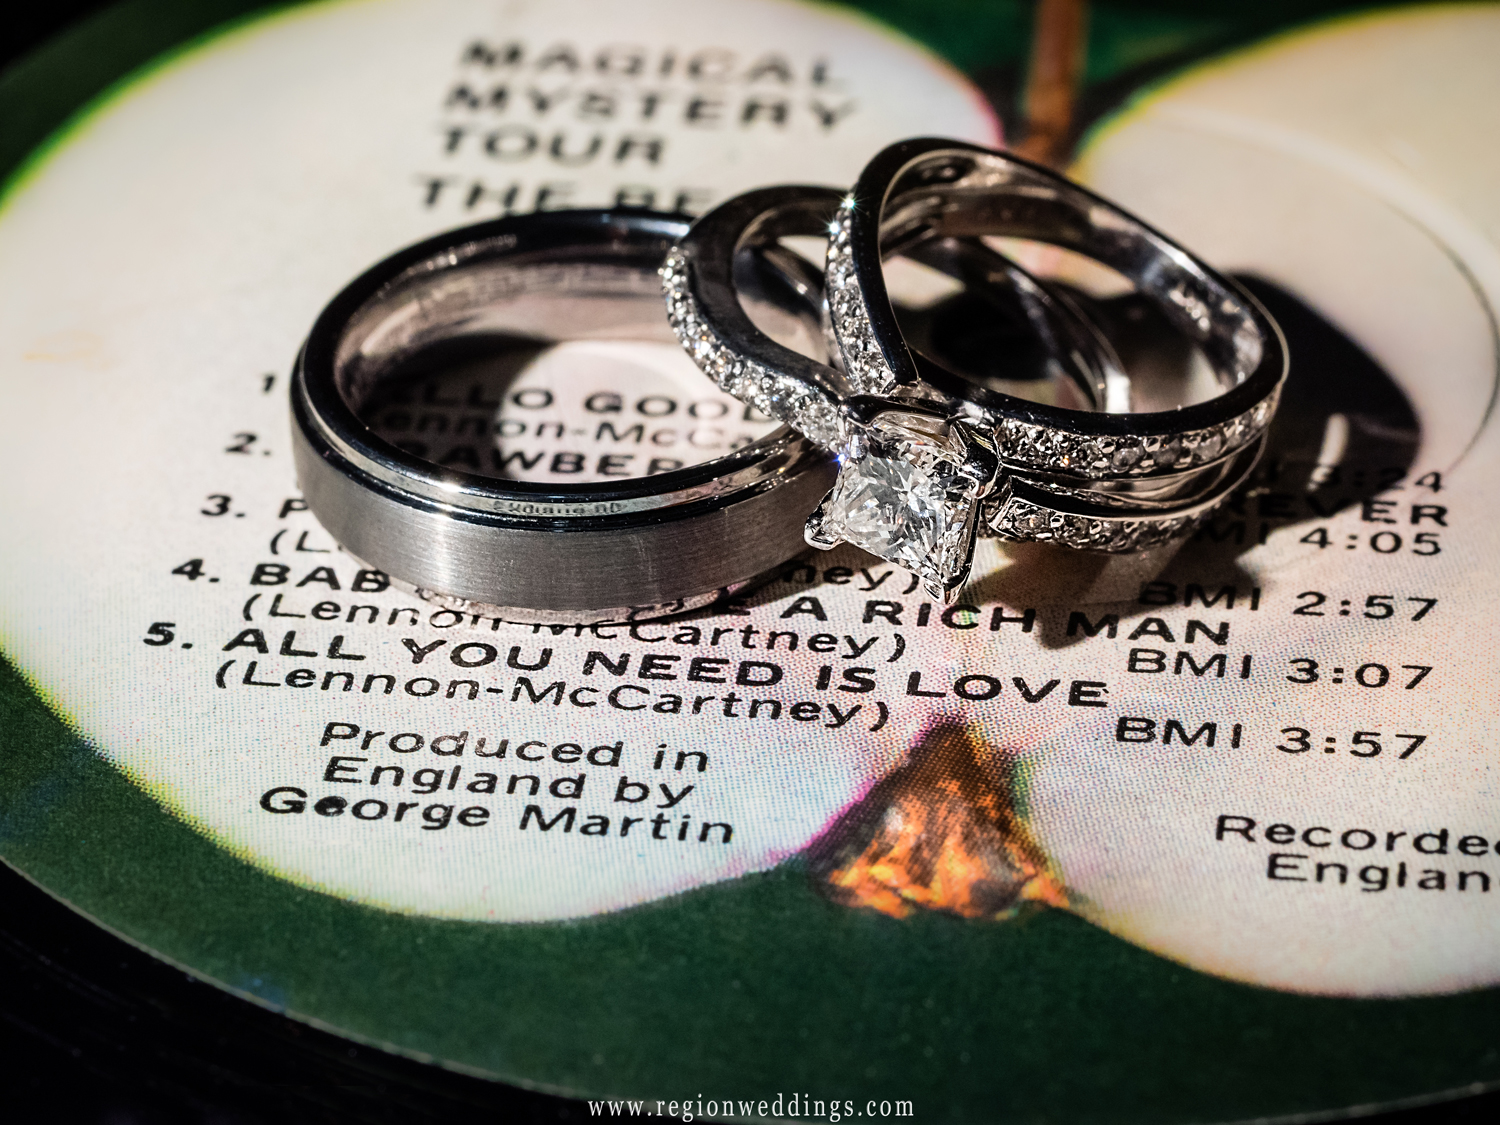 A Beatles All You Need Is Love themed wedding ring photo.